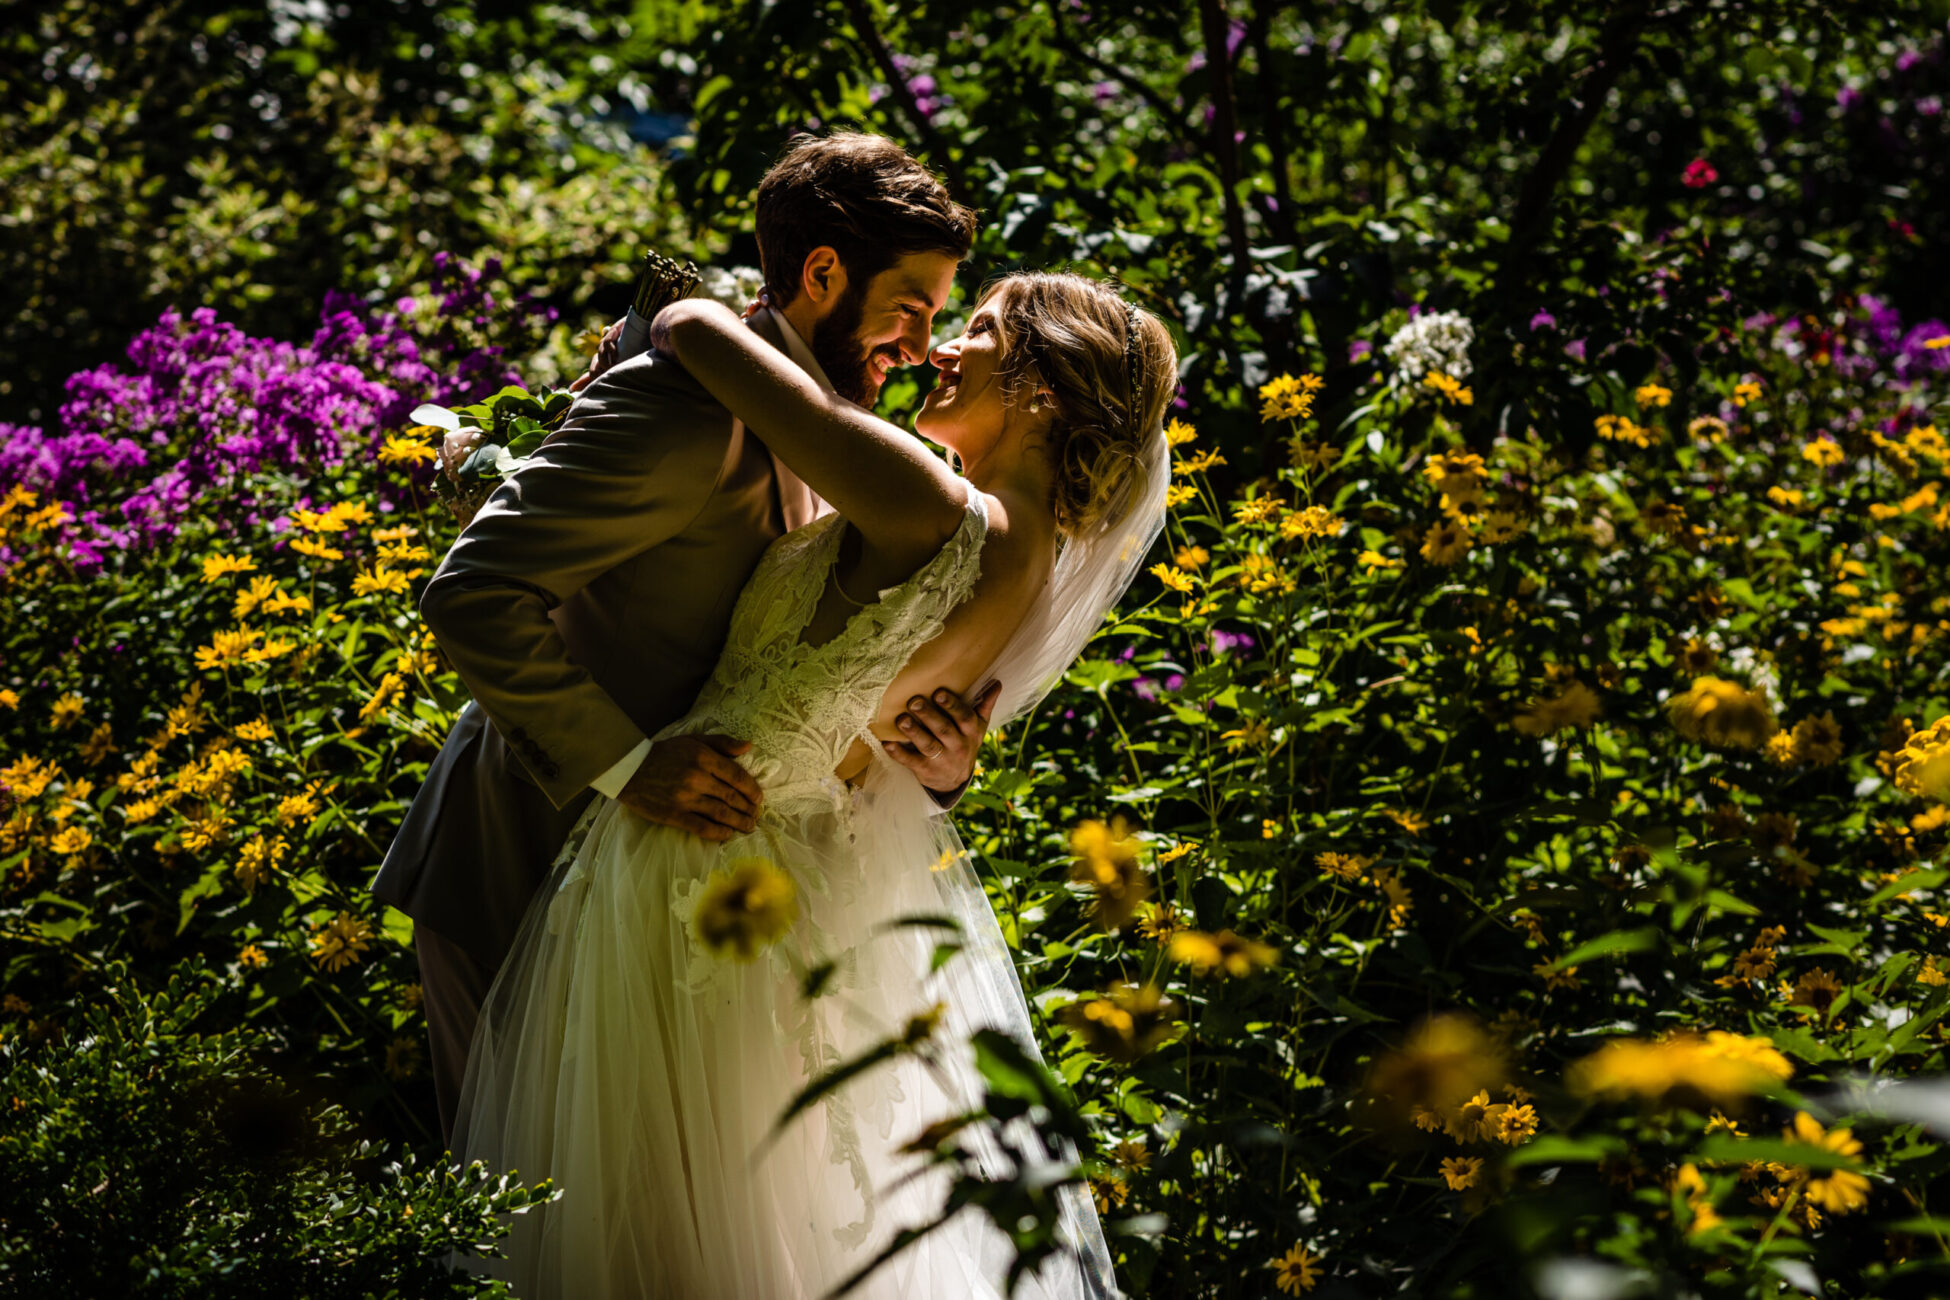 Bride and groom embrace in the flowers at linden gardens wedding